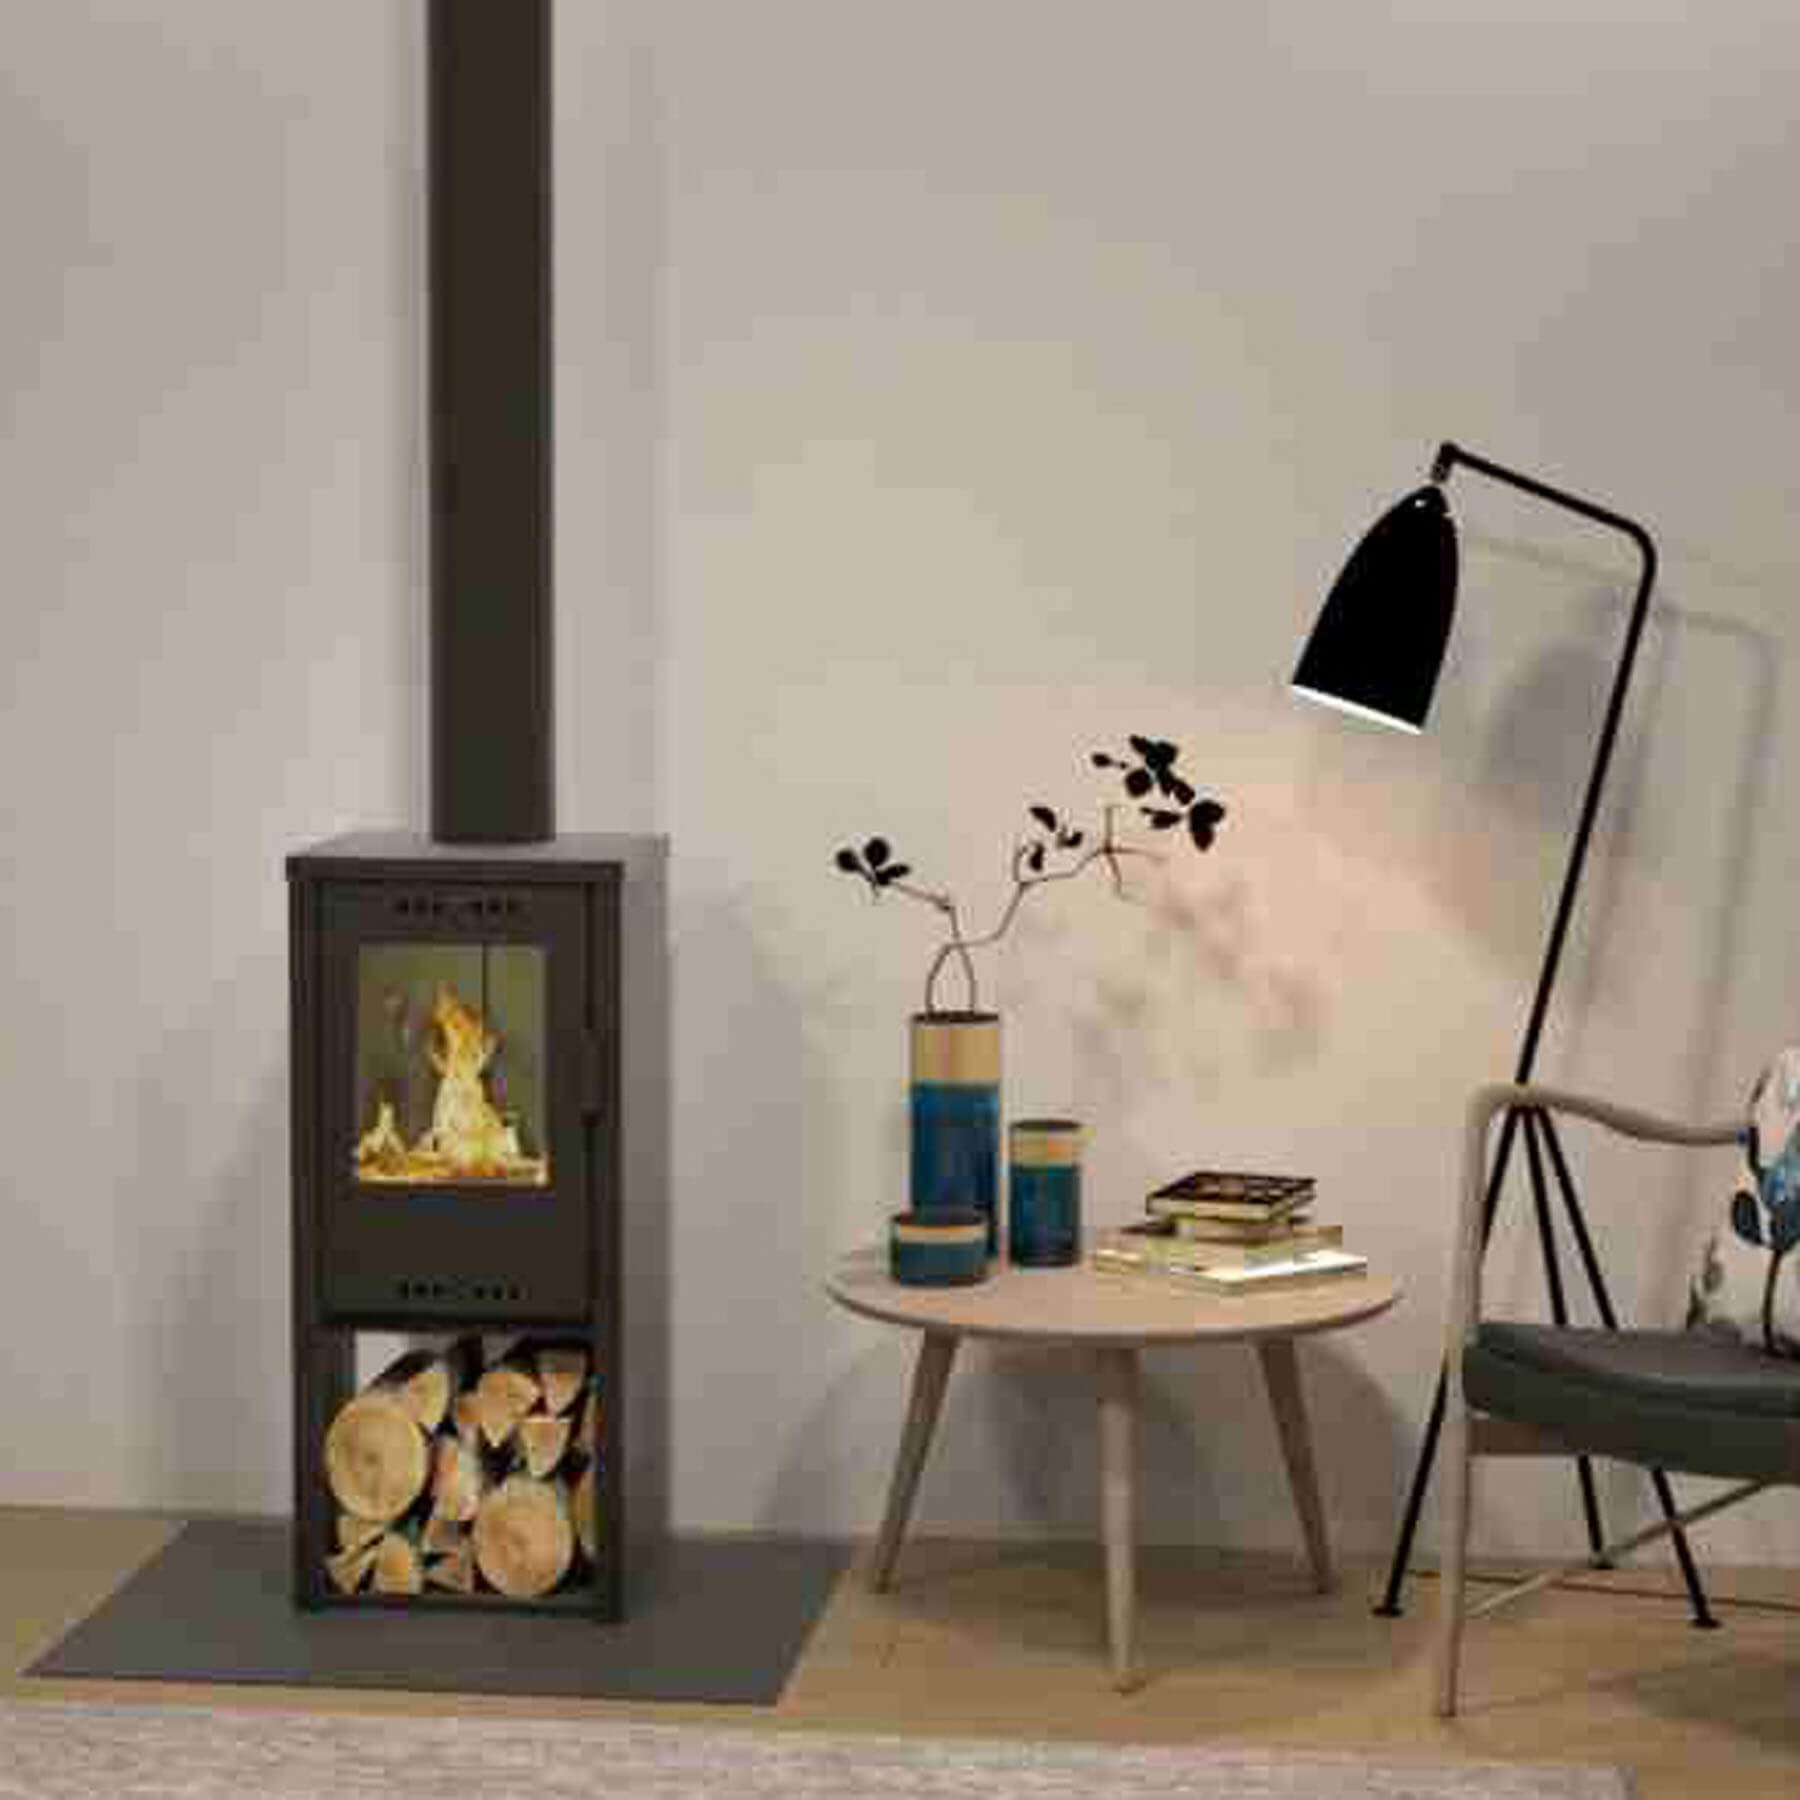 Combustion-Fireplaces-Freestanding-Gaudi